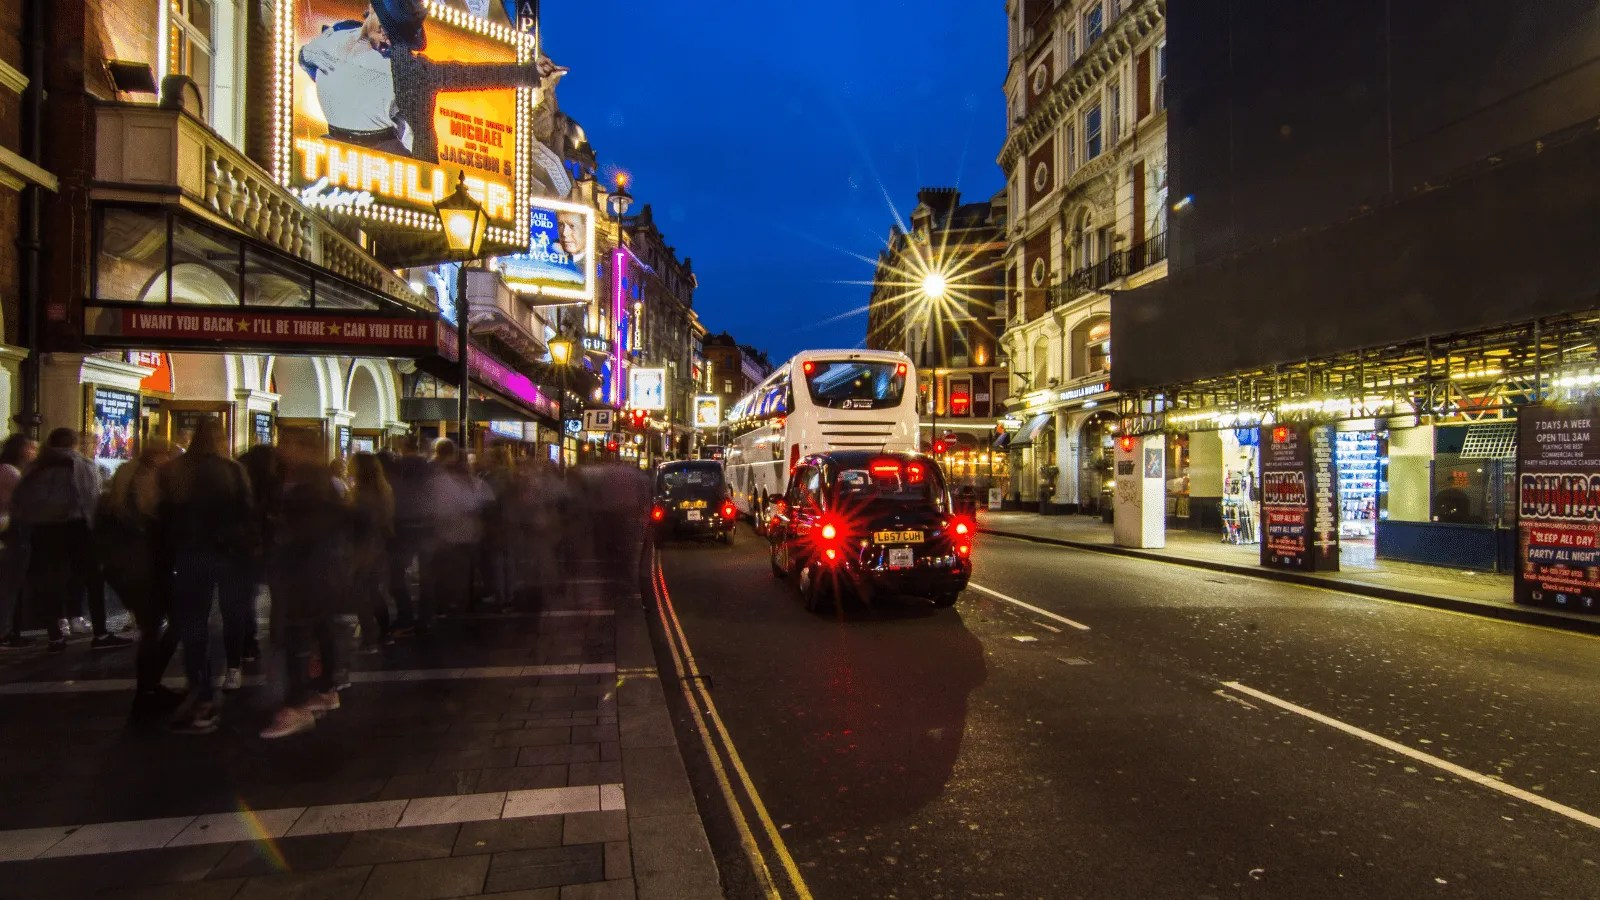 Shaftesbury Avenue, one of the main thoroughfares in London's West End thumbnail